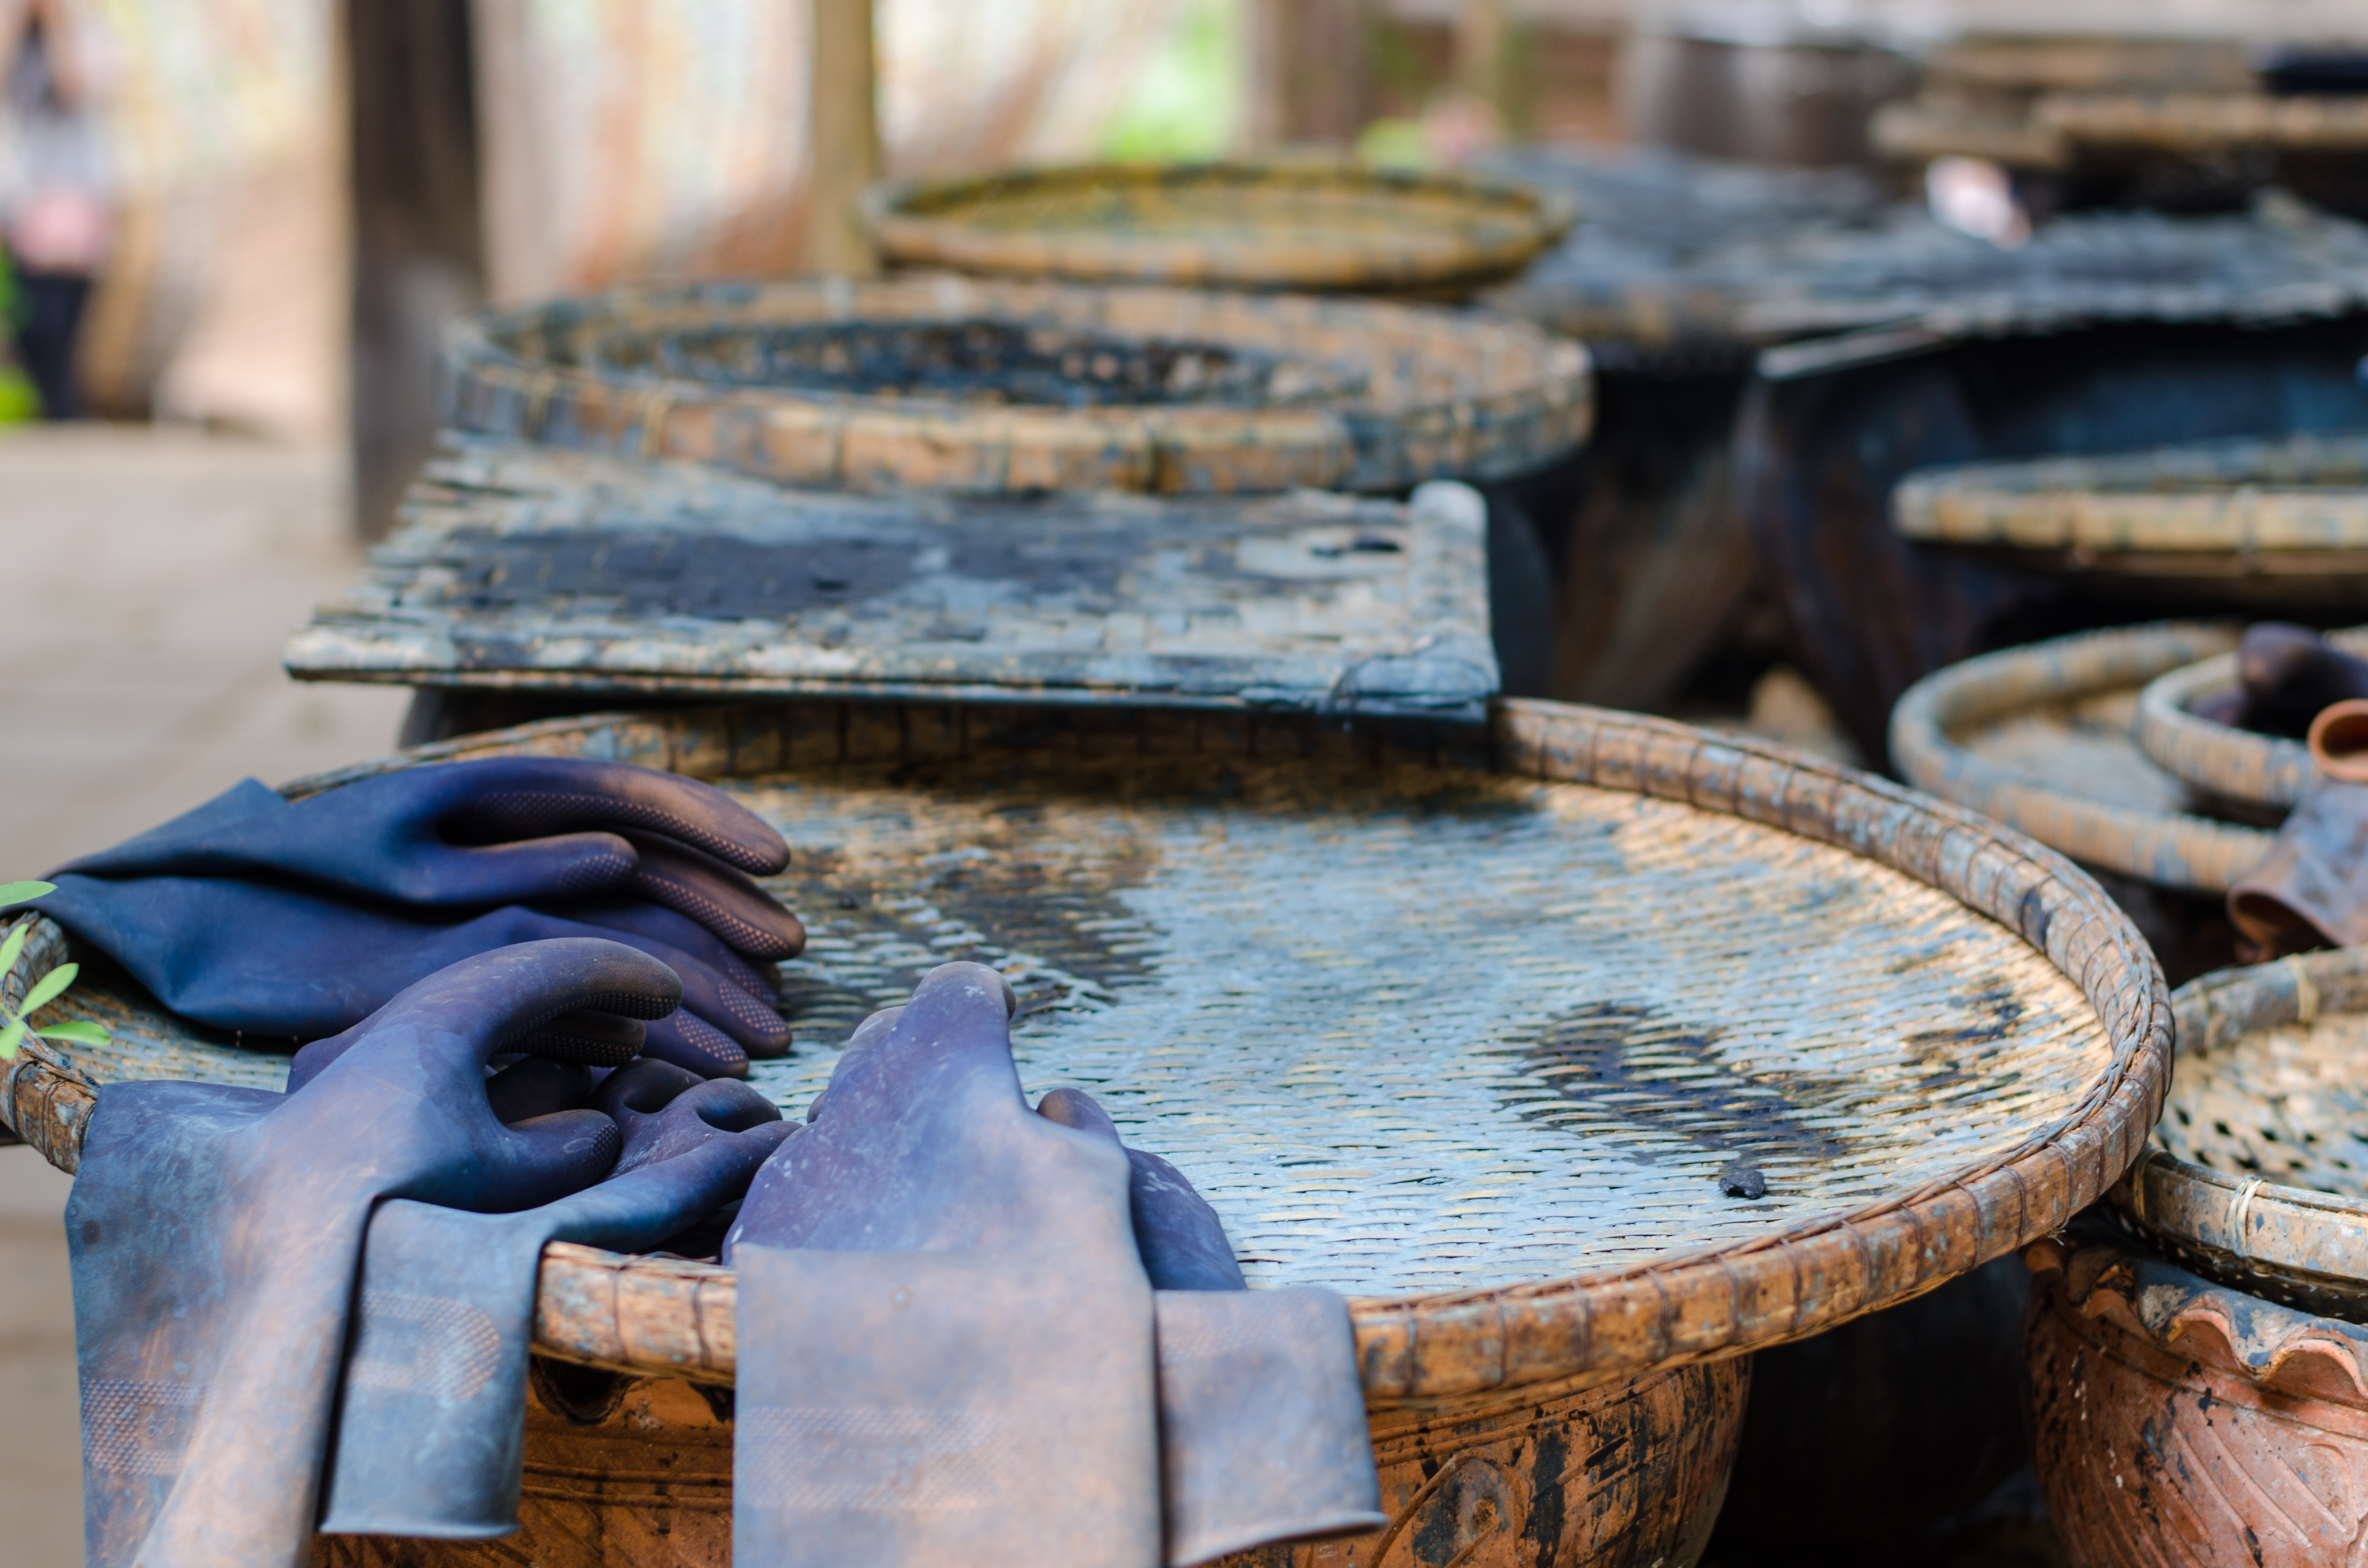 Natural Dyeing 101 at Textile Arts Center